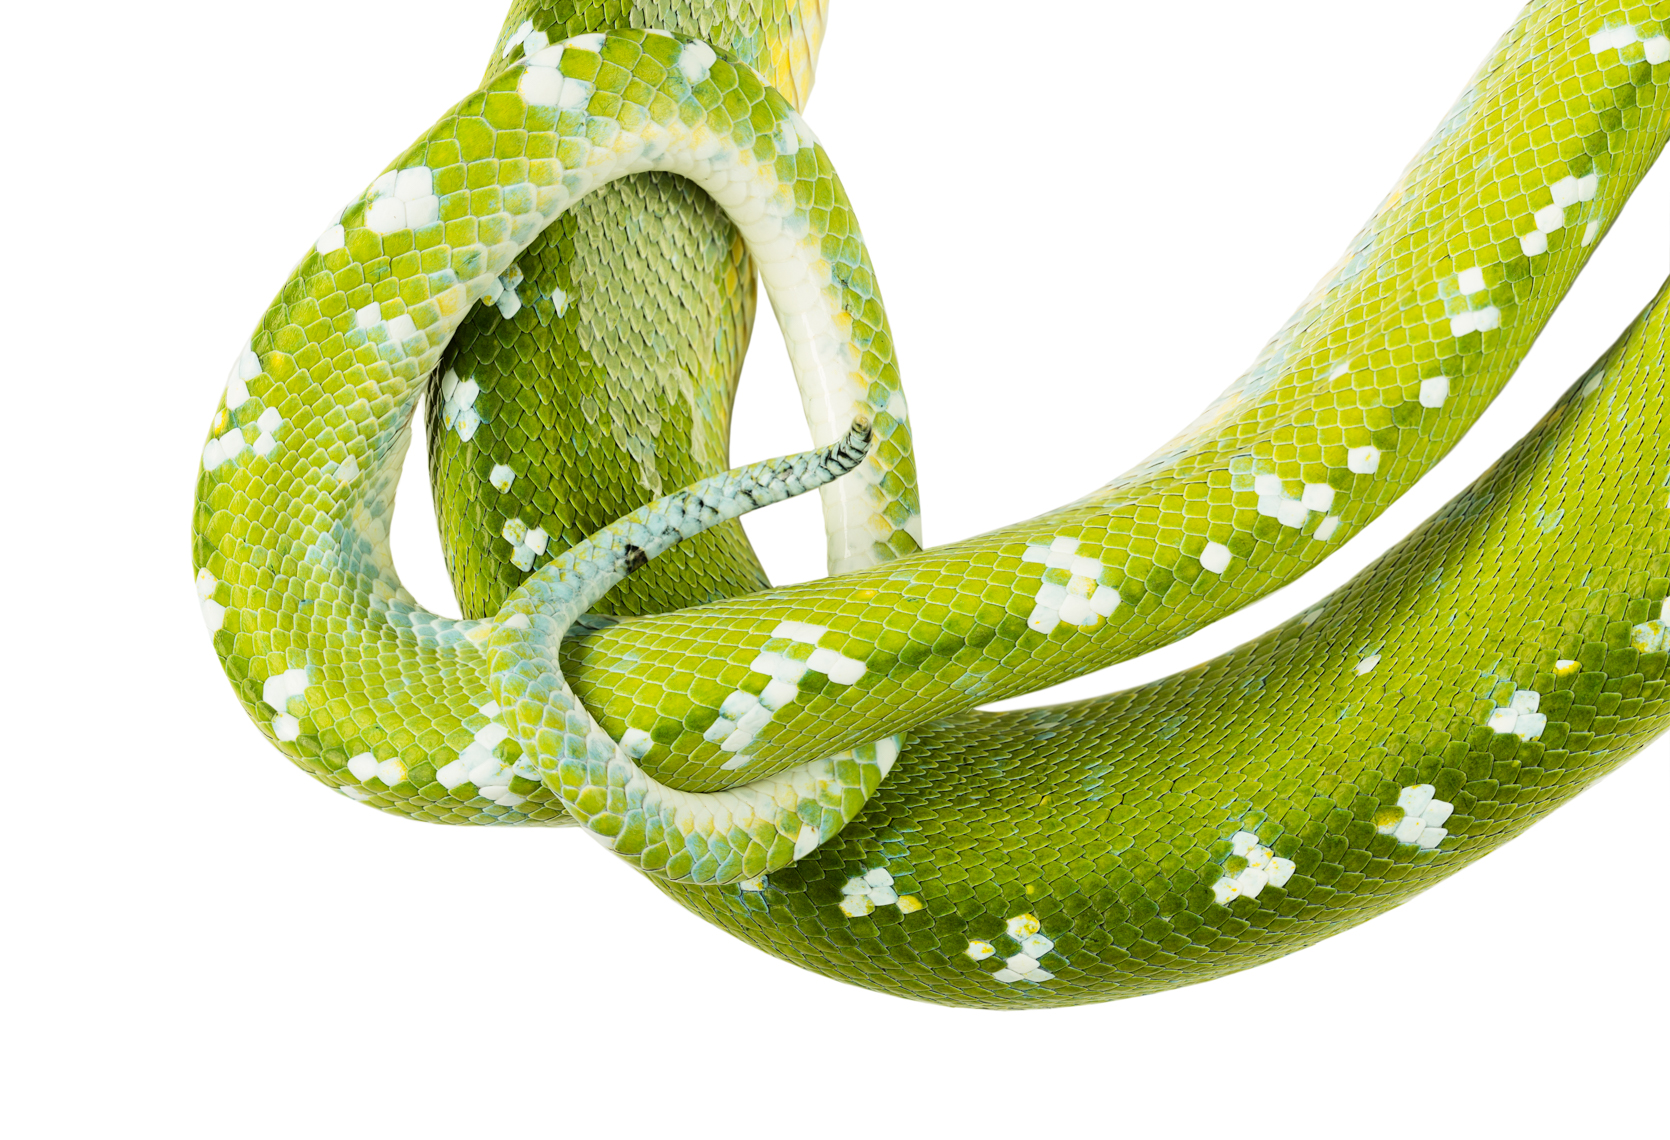 Green Tree Python tail detail